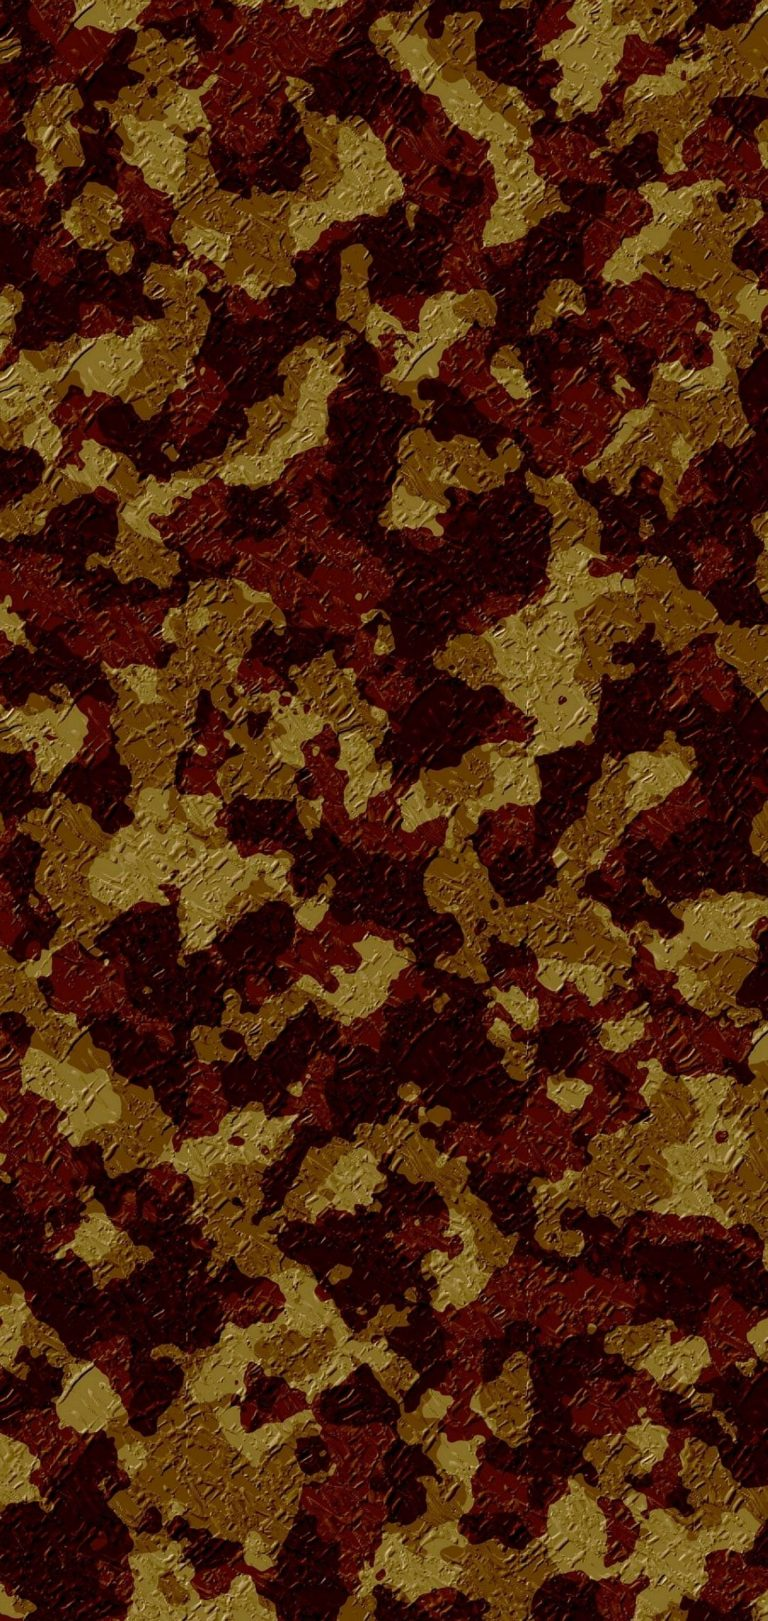 Army Camo Texture Design Wallpaper 1440x3040 768x1621